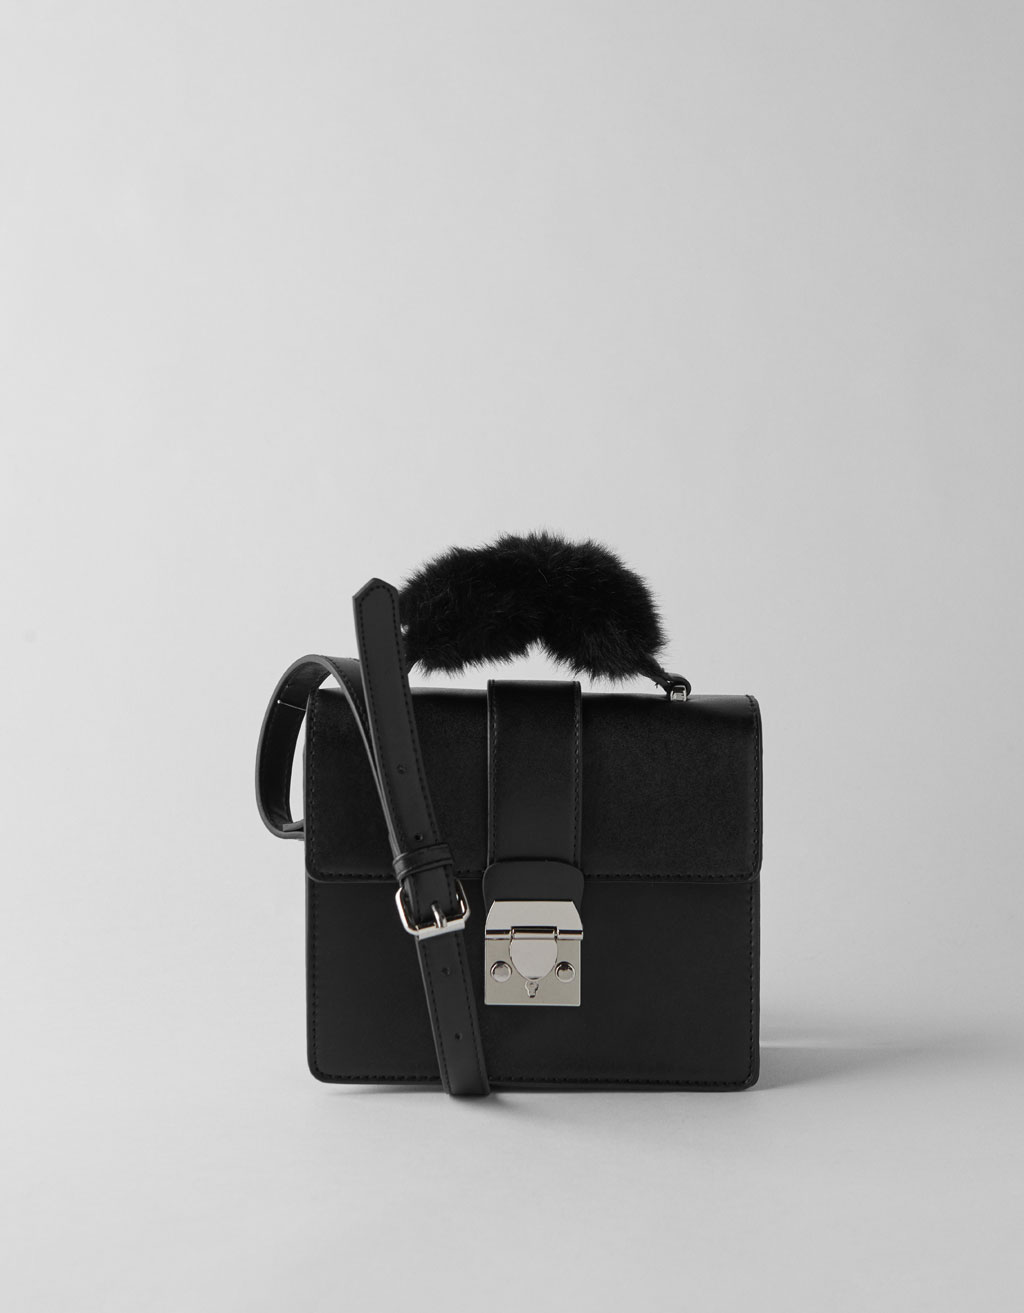 Faux leather bag with faux fur strap